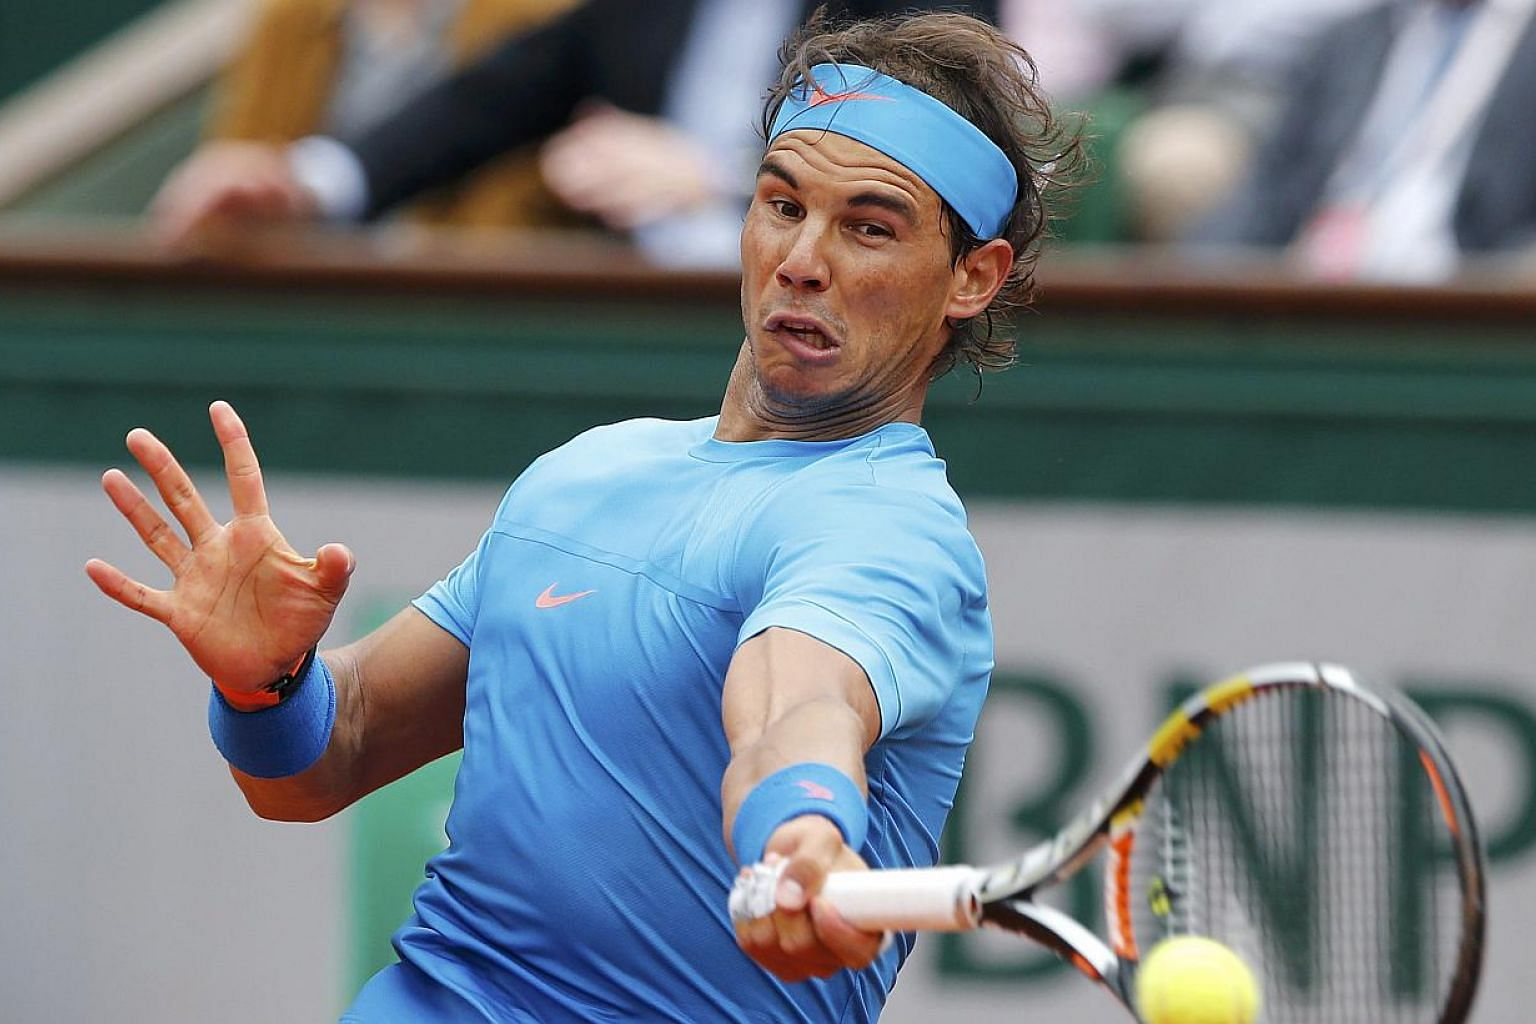 Rafael Nadal of Spain plays a shot to Quentin Halys of France during their men's singles match at the French Open tennis tournament at the Roland Garros stadium in Paris, France on May 26, 2015. -- PHOTO: REUTERS